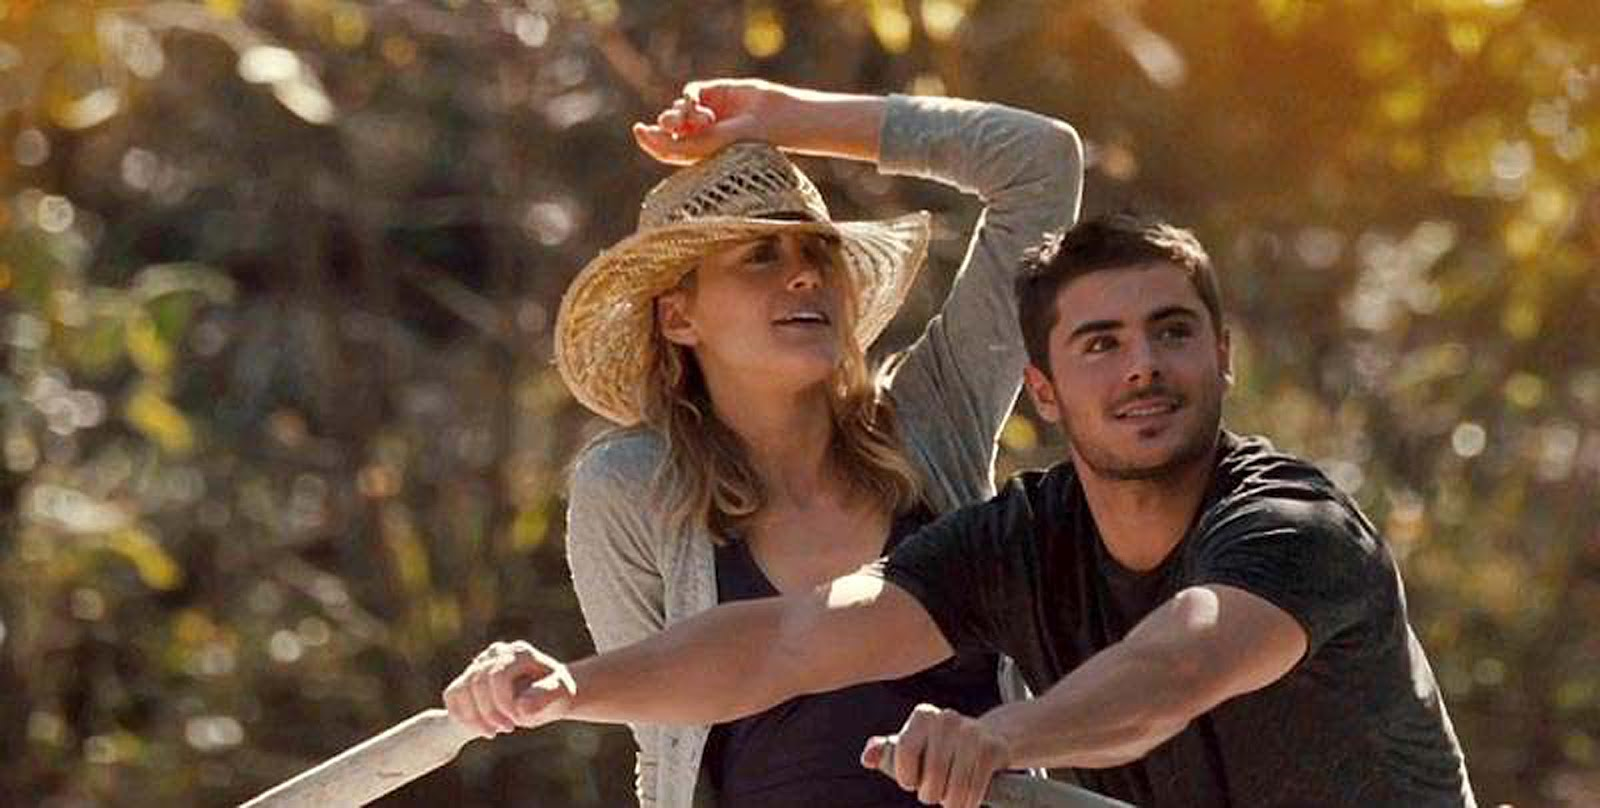 'THE LUCKY ONE' Movie by ZAC EFRON and TAYLOR SCHILLING ...Taylor Schilling Argo